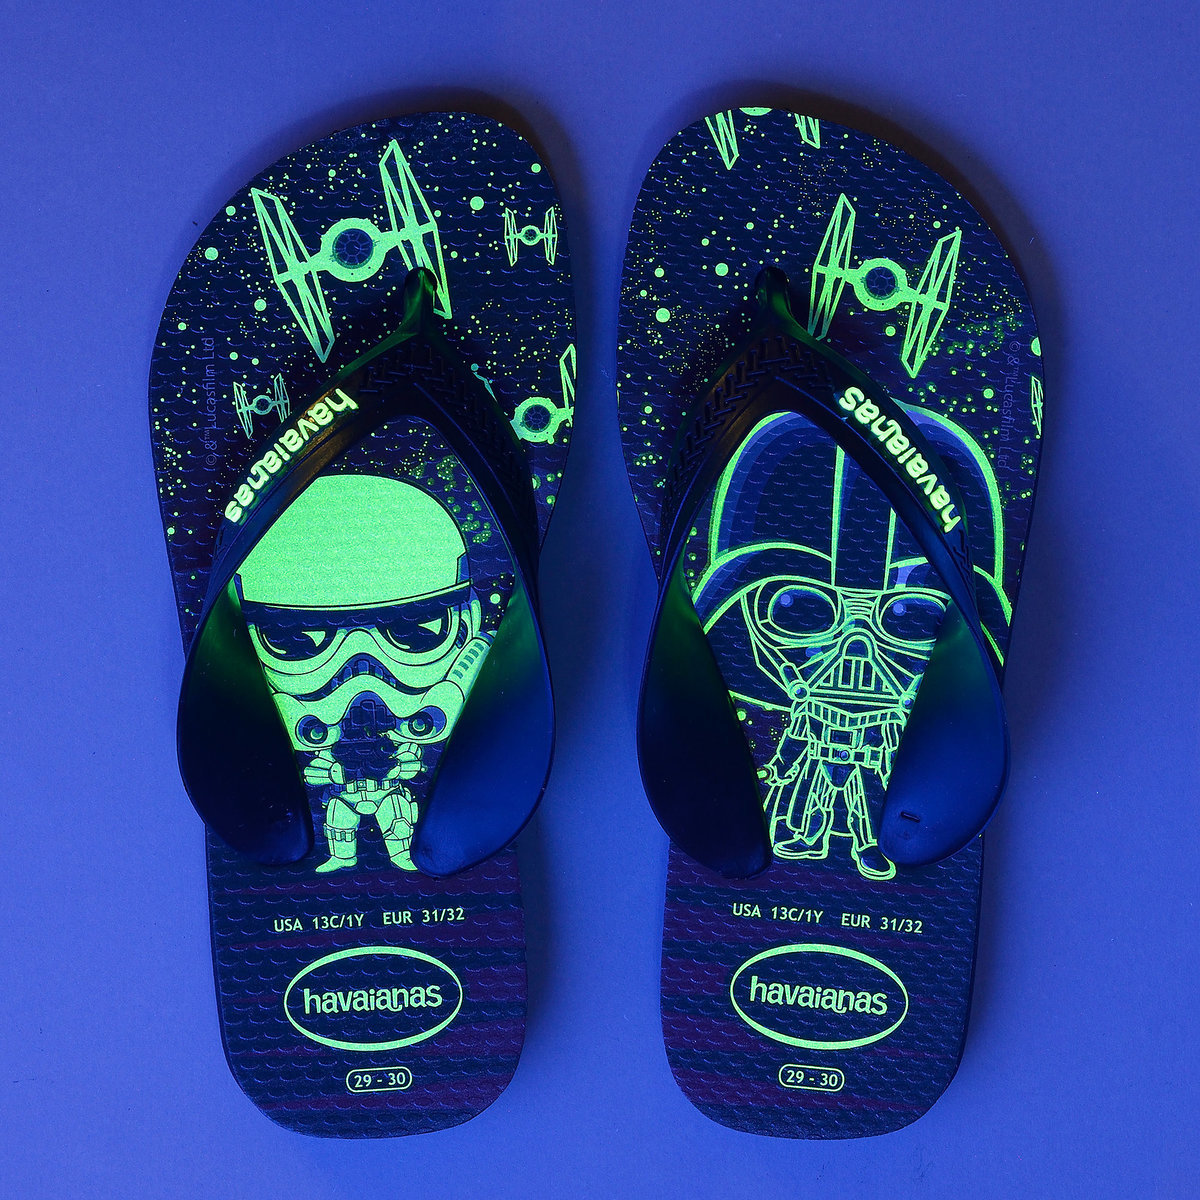 da6f0a4cc80 Product Image of Star Wars Glow-in-the-Dark Flip Flops for Kids